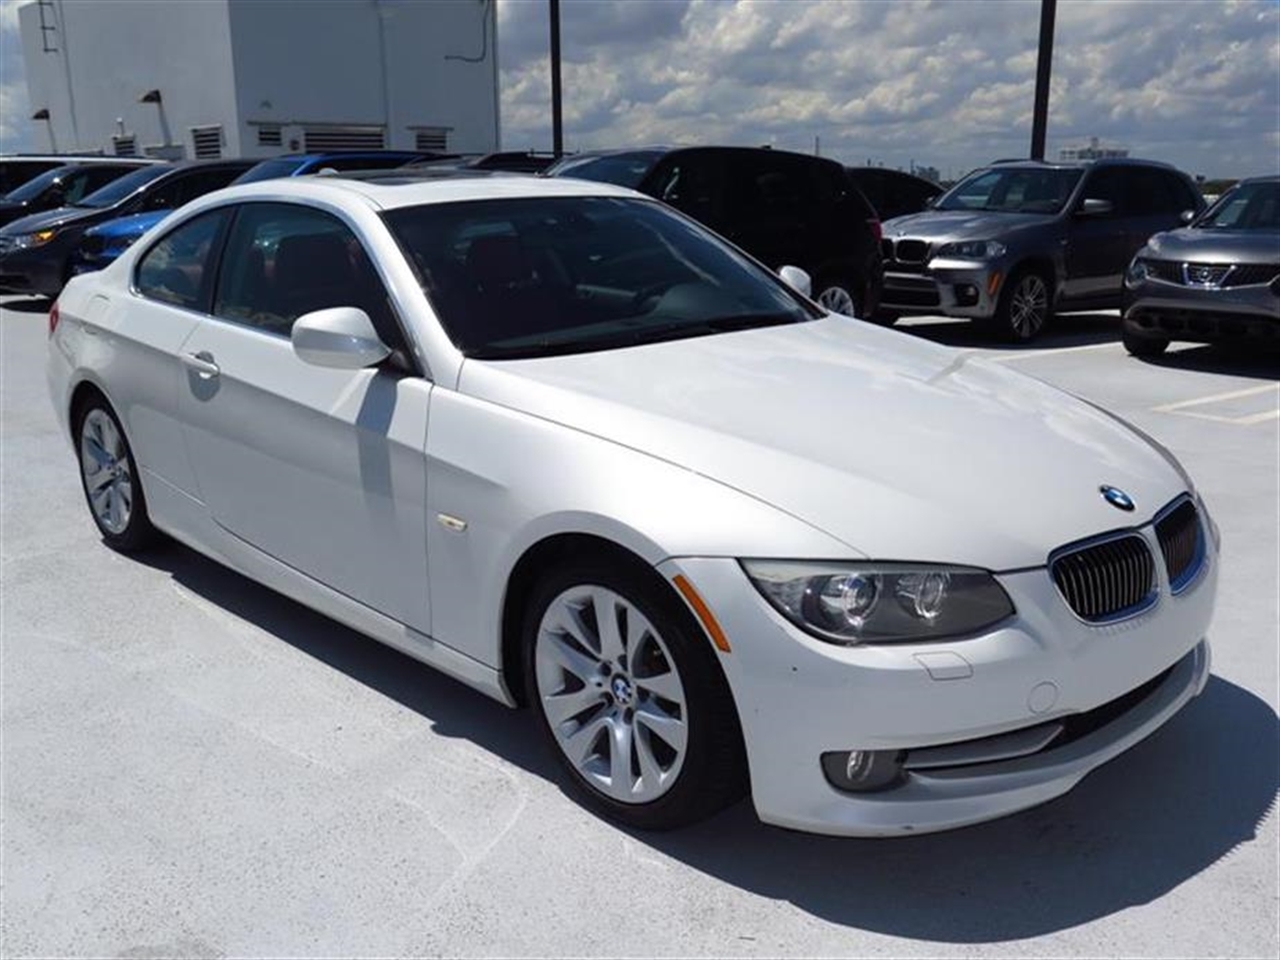 2012 BMW 3 SERIES 2dr Cpe 328i RWD 35870 miles 3-spoke leather-wrapped multi-function sport steer